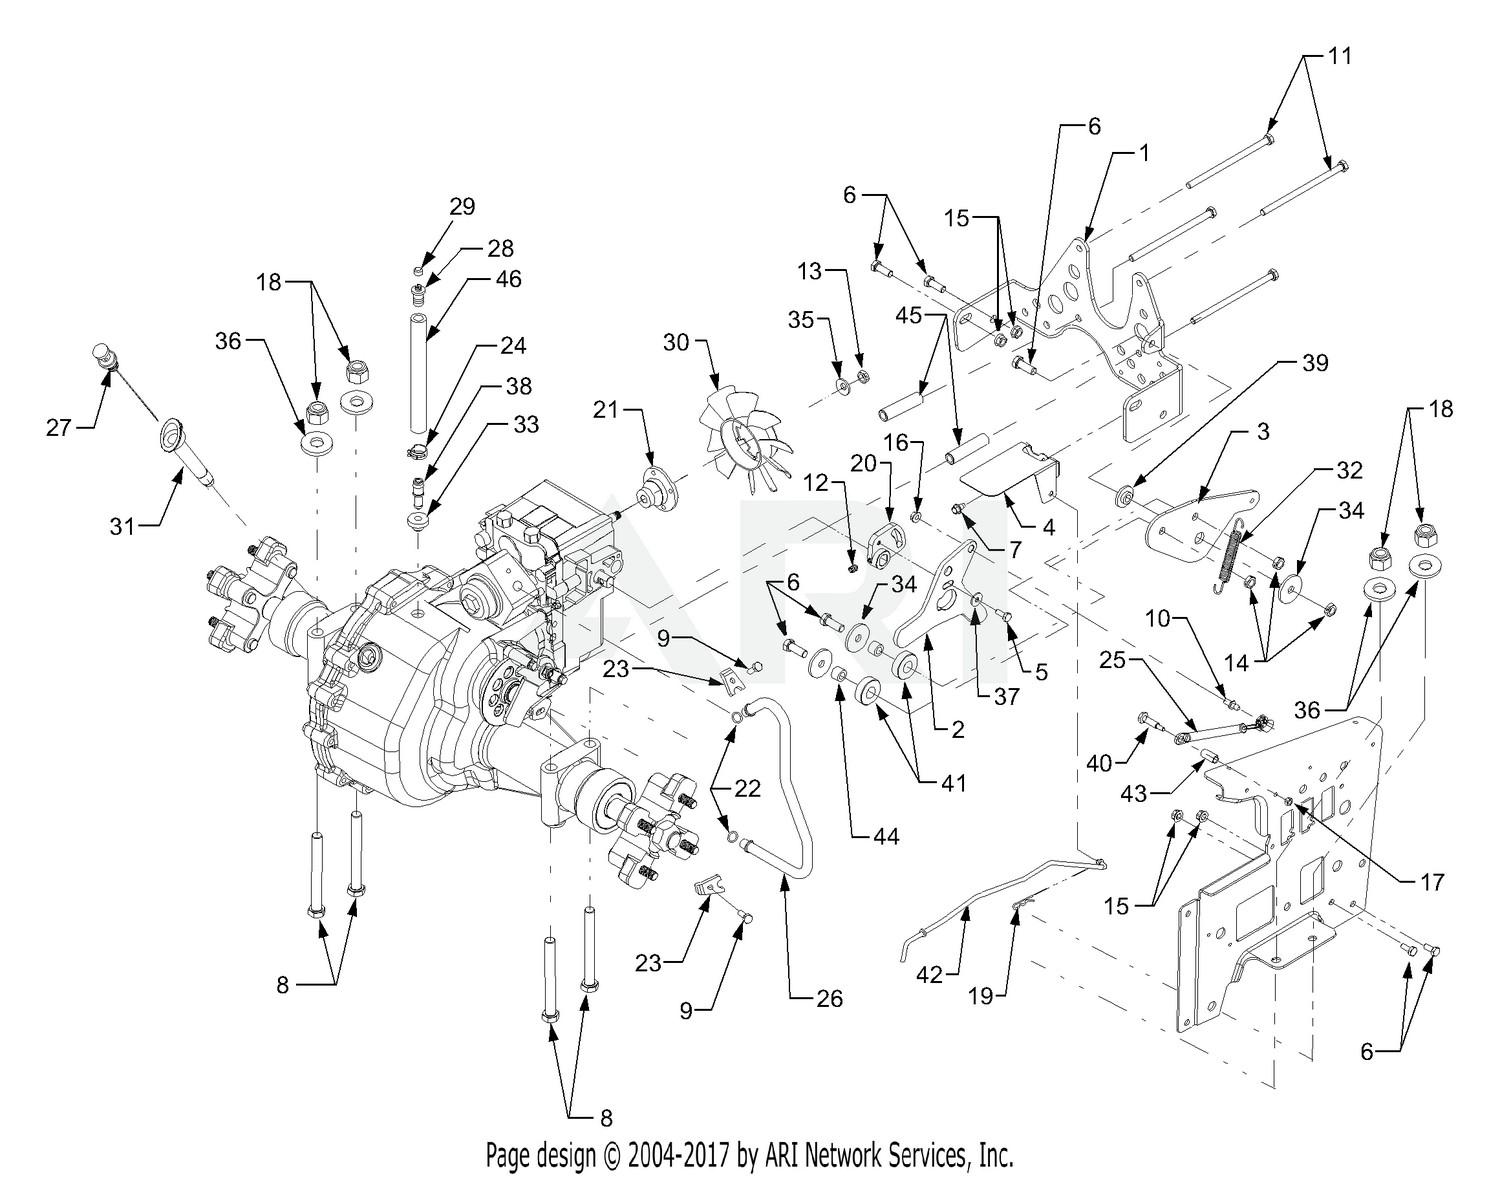 Cub Cadet 3204 Tractor 14A-641-100 Transmission Mounting And Neutral on cub parts diagram, cub cadet 3184 wiring diagram, cub cadet 2166 belt diagram,